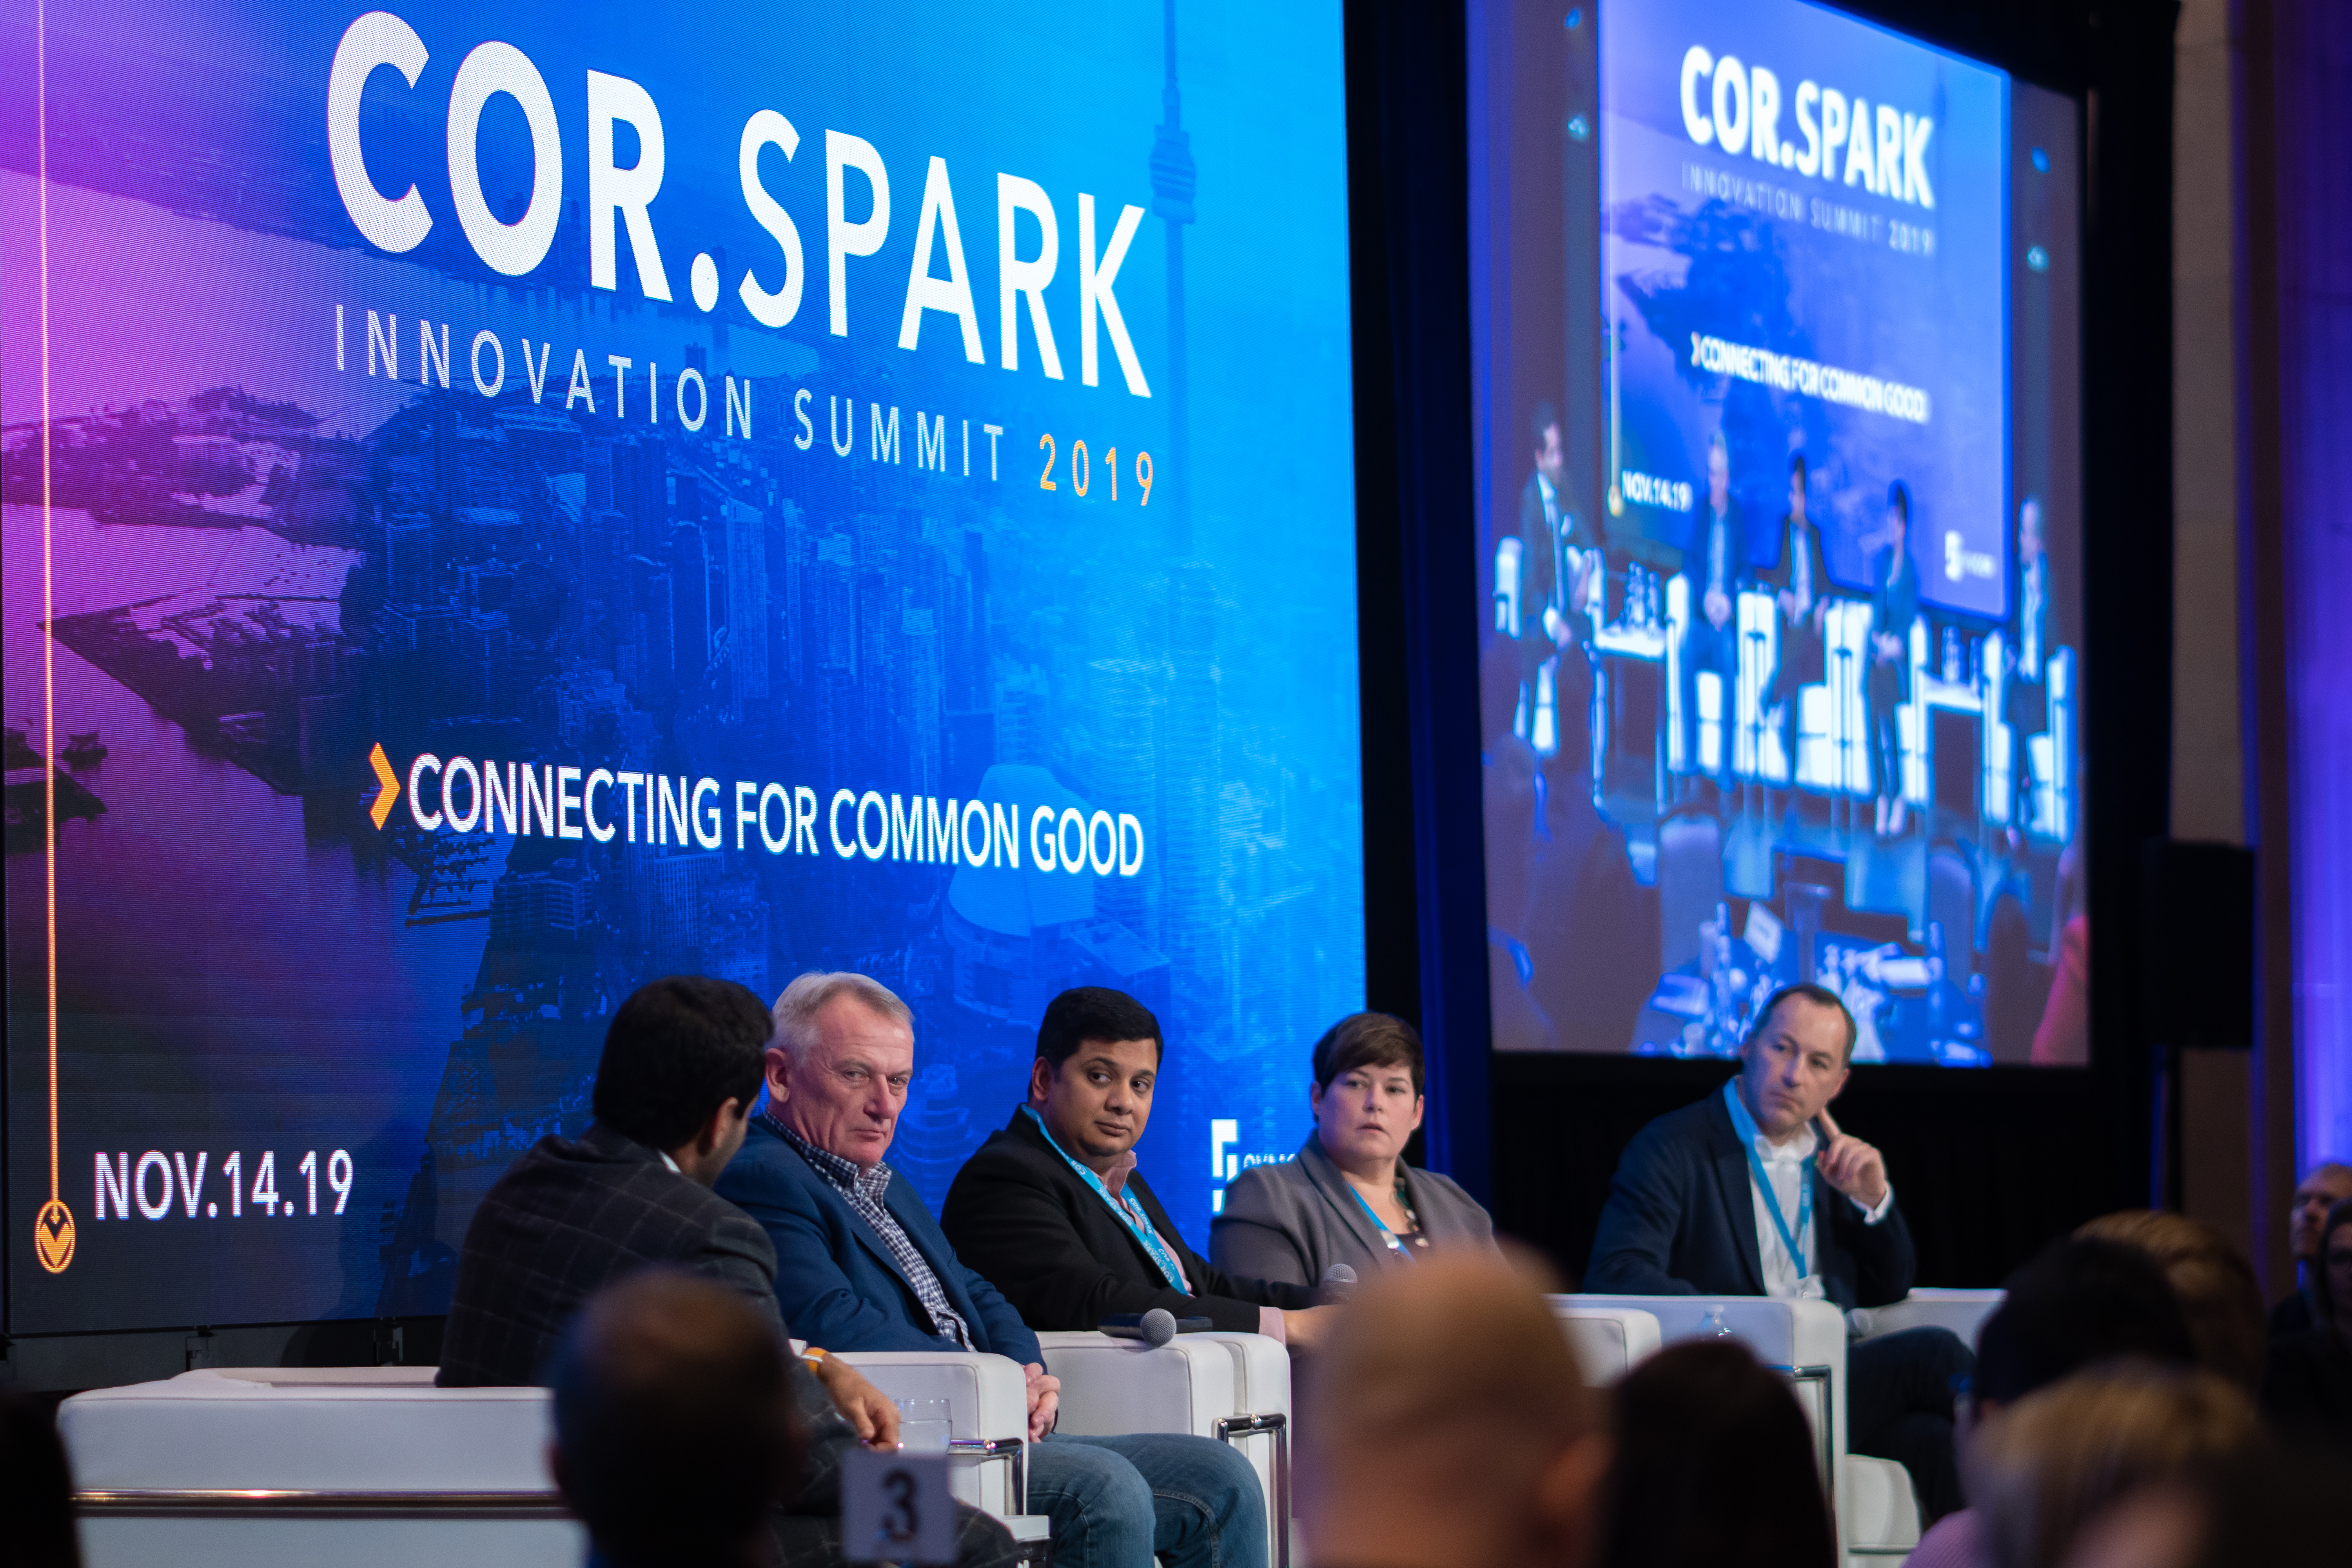 Cor.Spark Summit-69